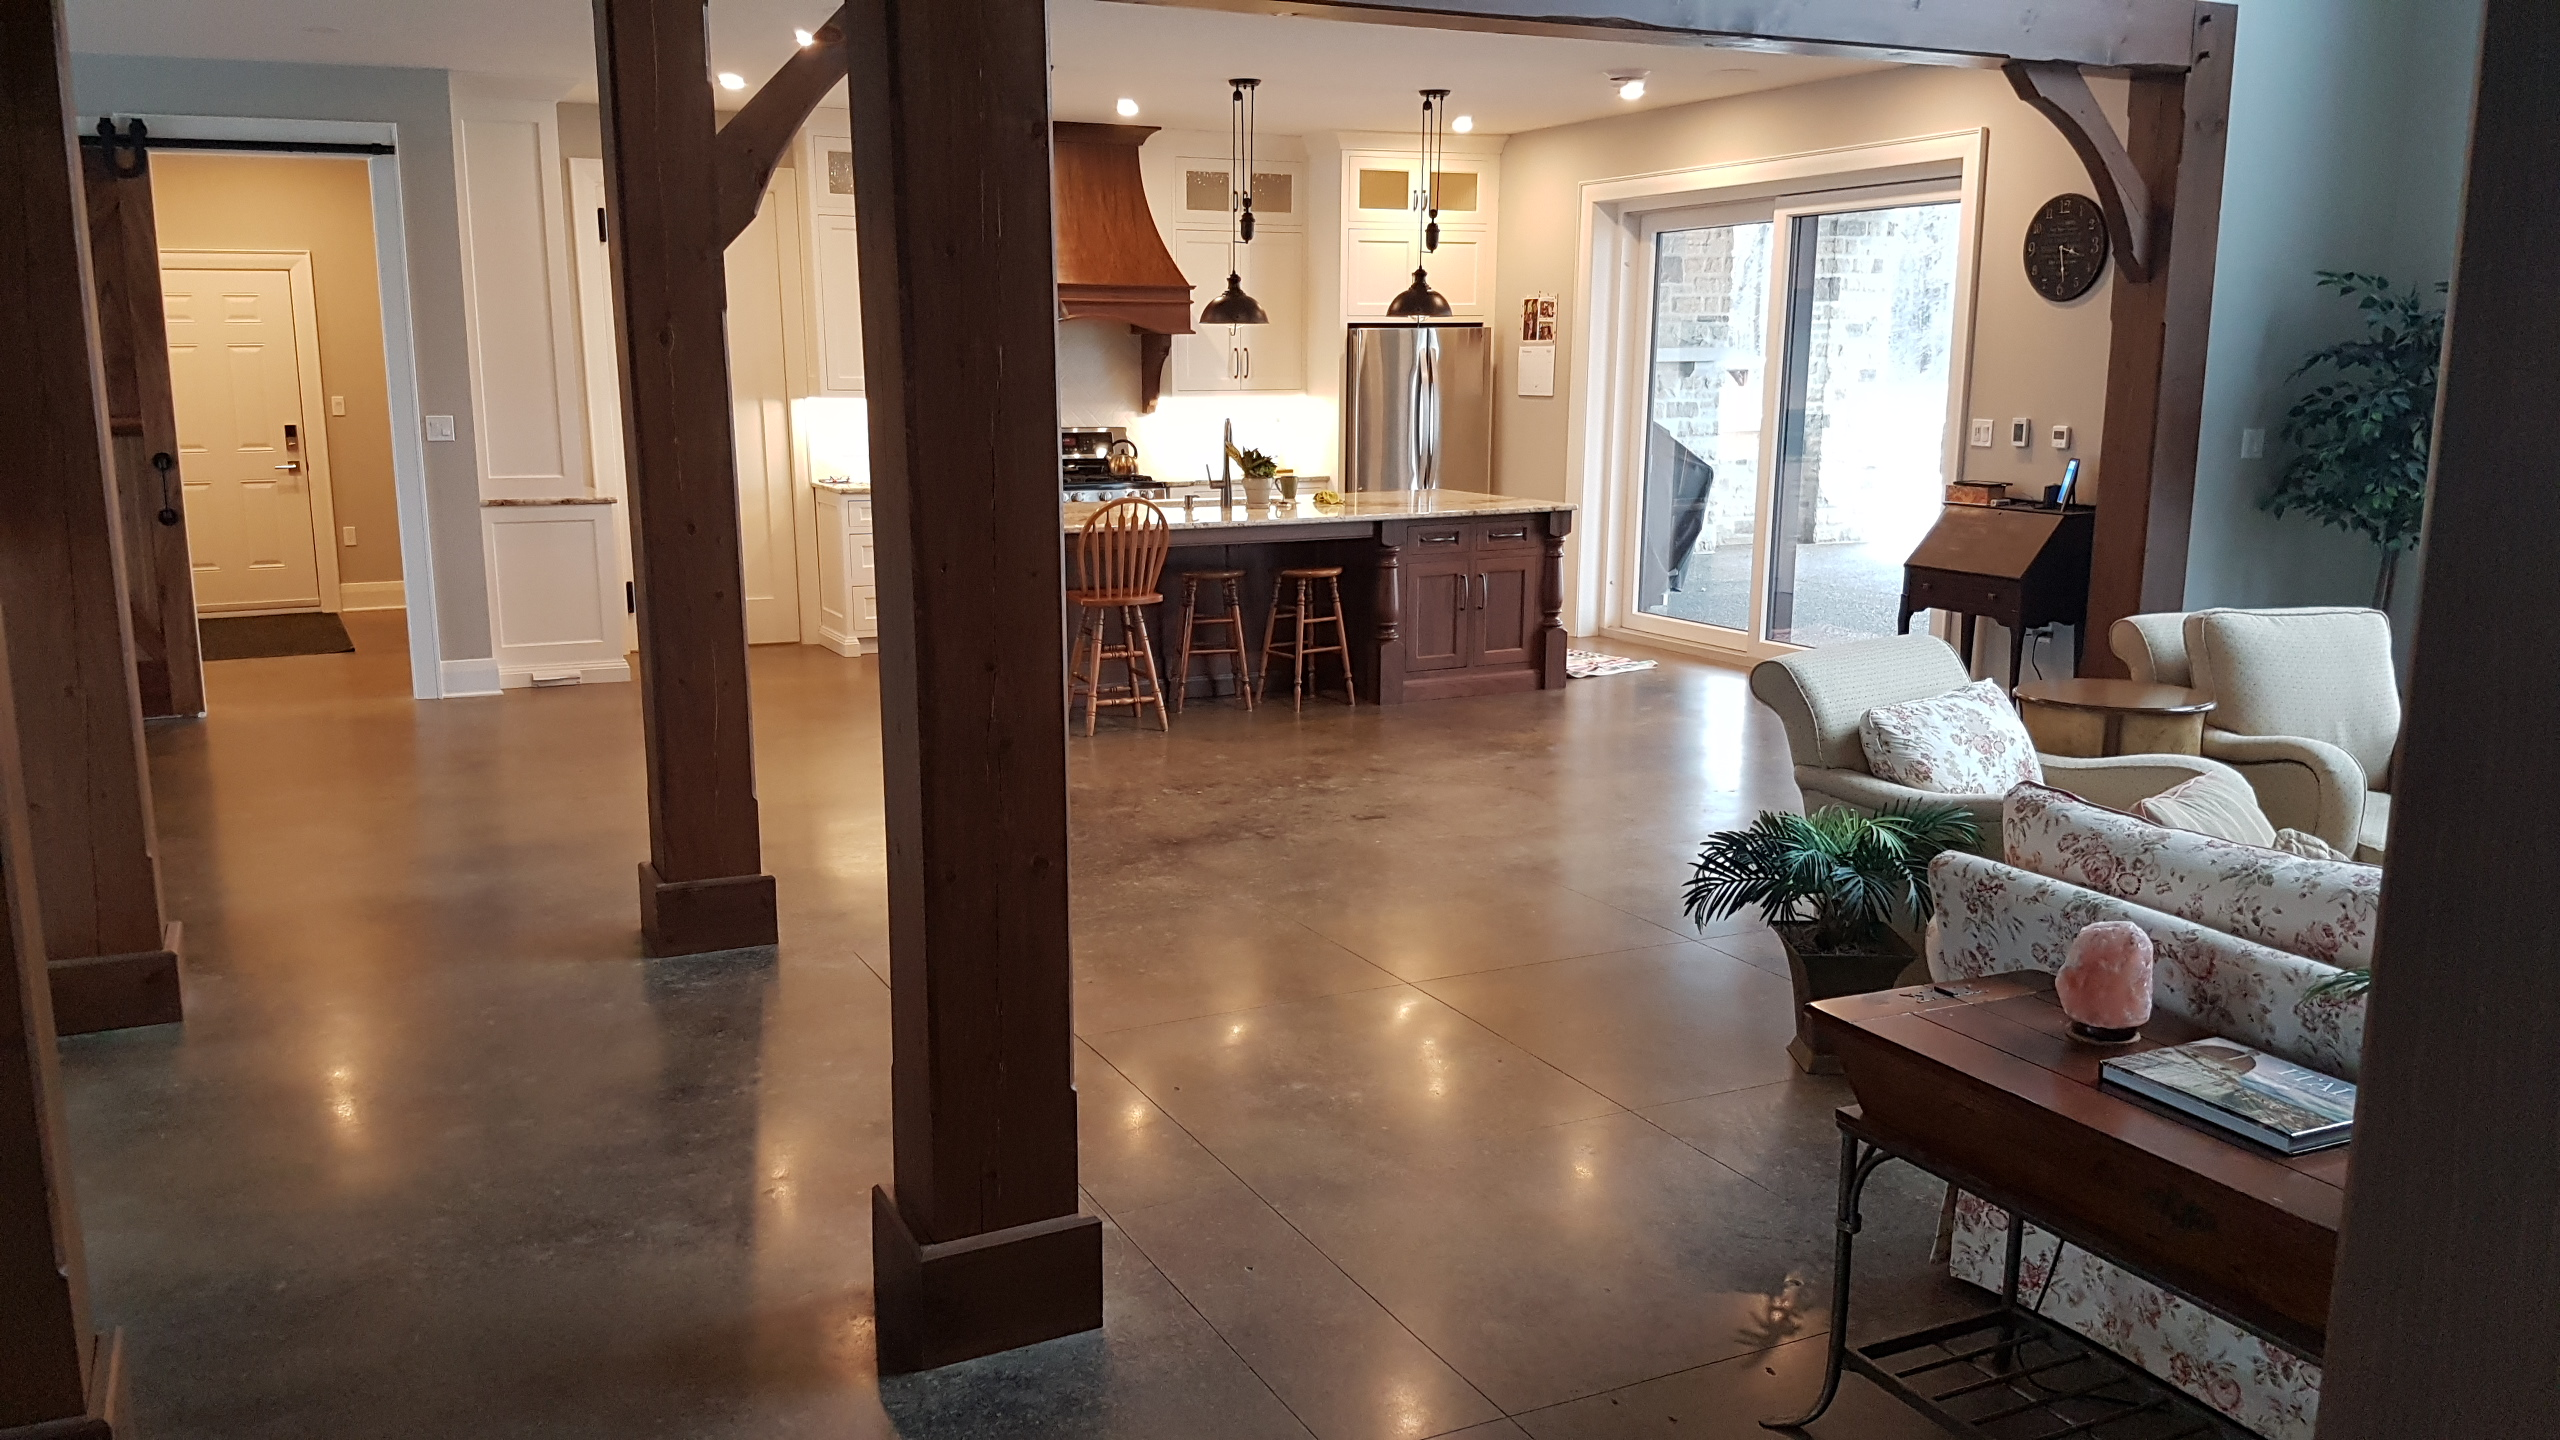 all new polished concrete floors!